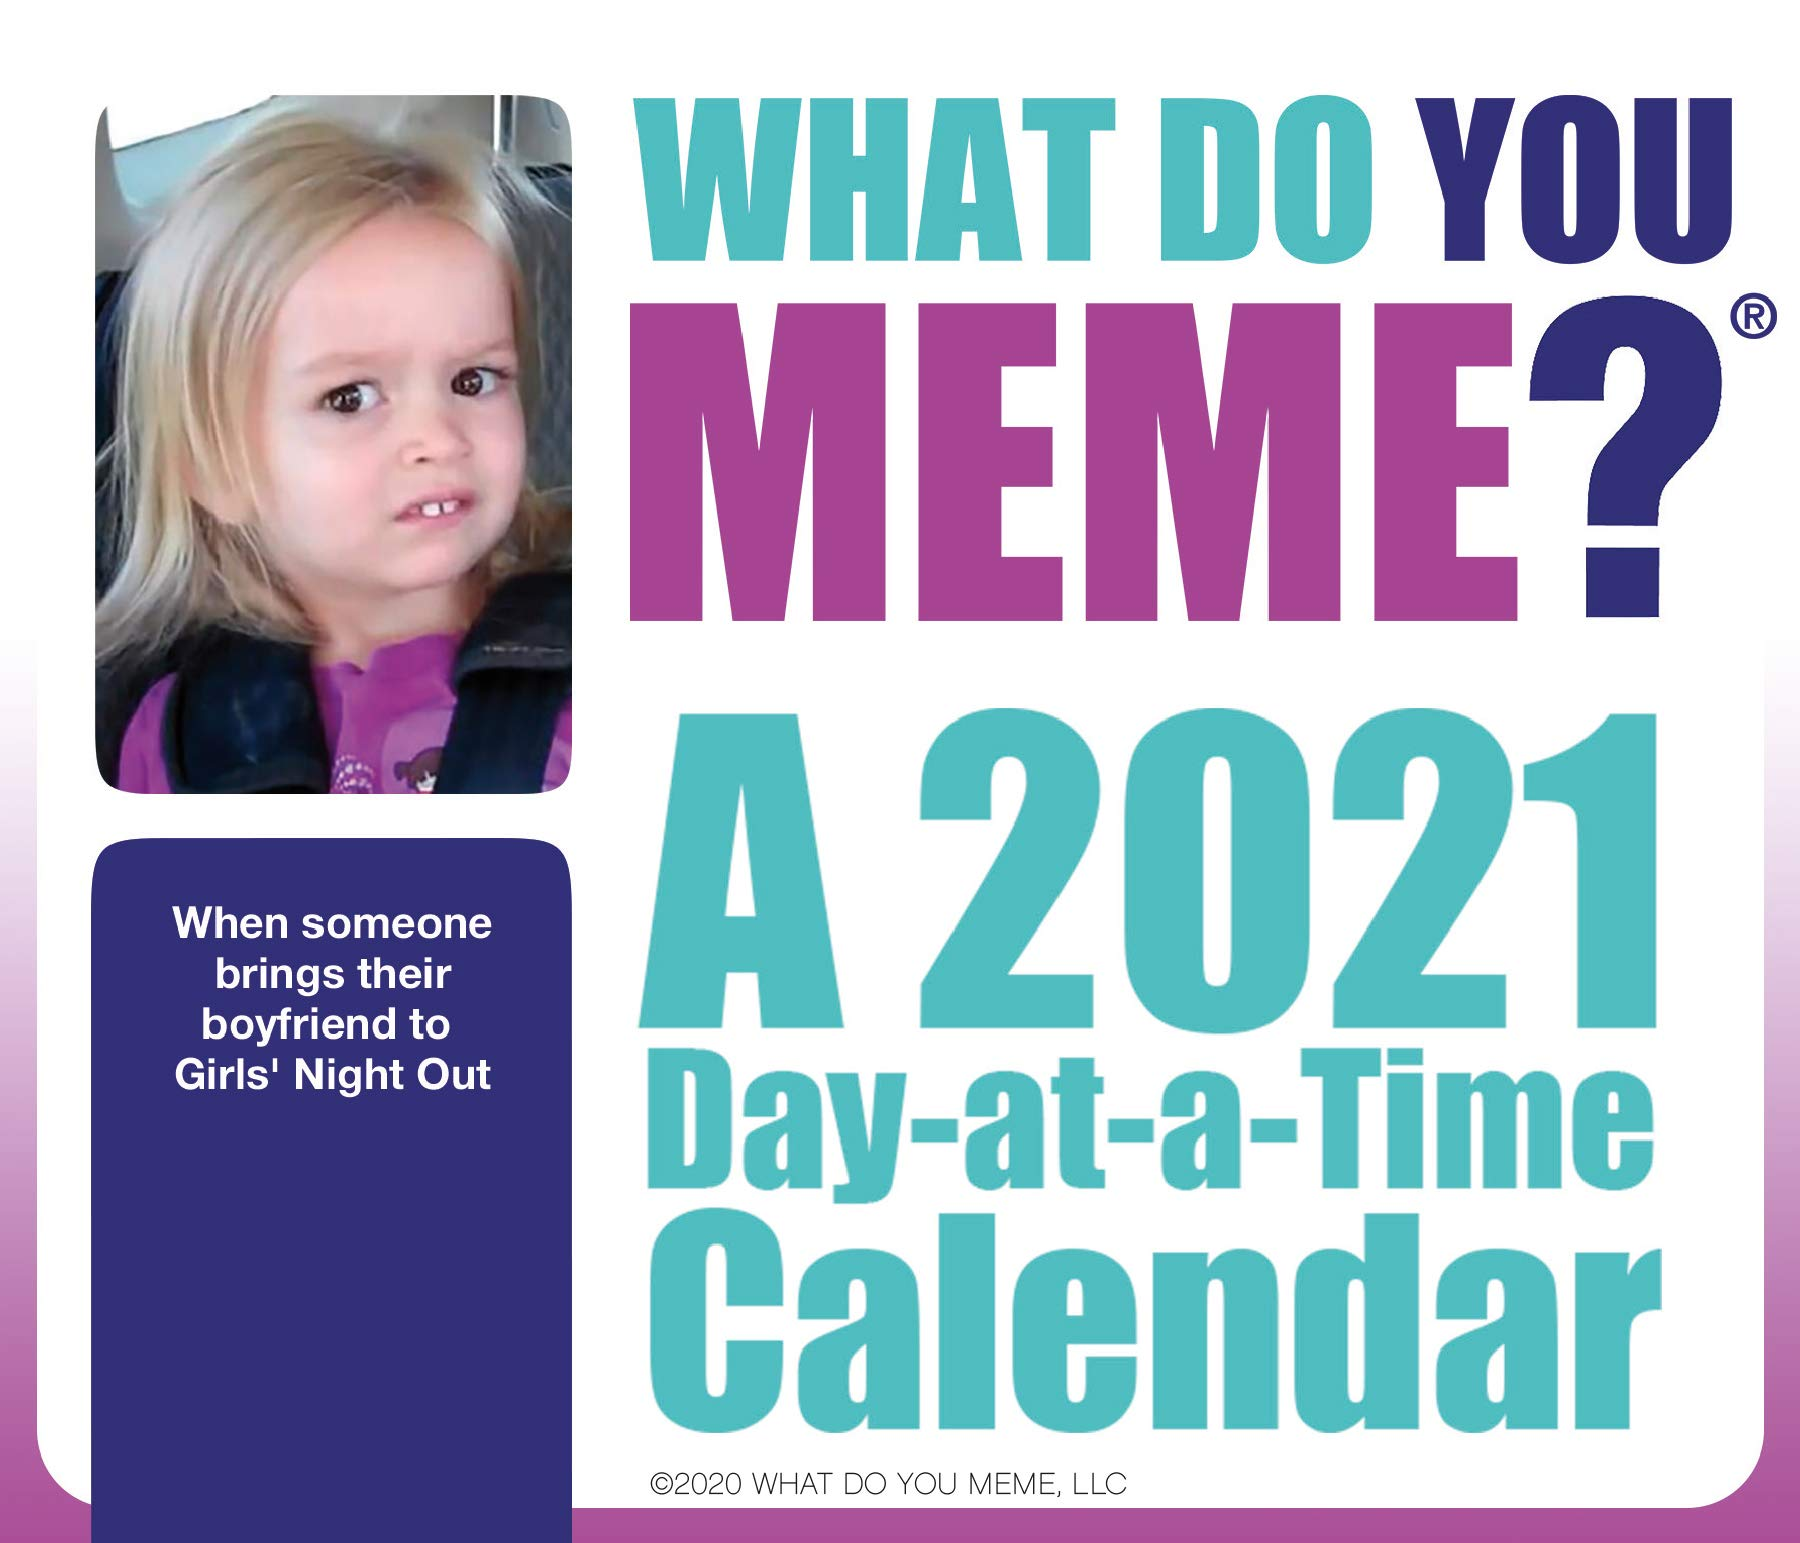 2021 Meme Calendar So Far 2021 What Do You Meme? Day at a Time Box Calendar: Trends